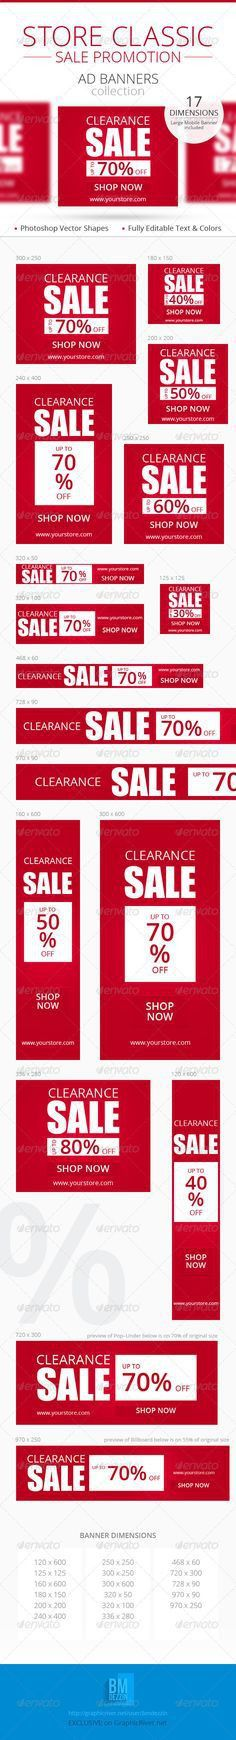 Black Friday Sales Banners   Sale banner, Ai illustrator and ...